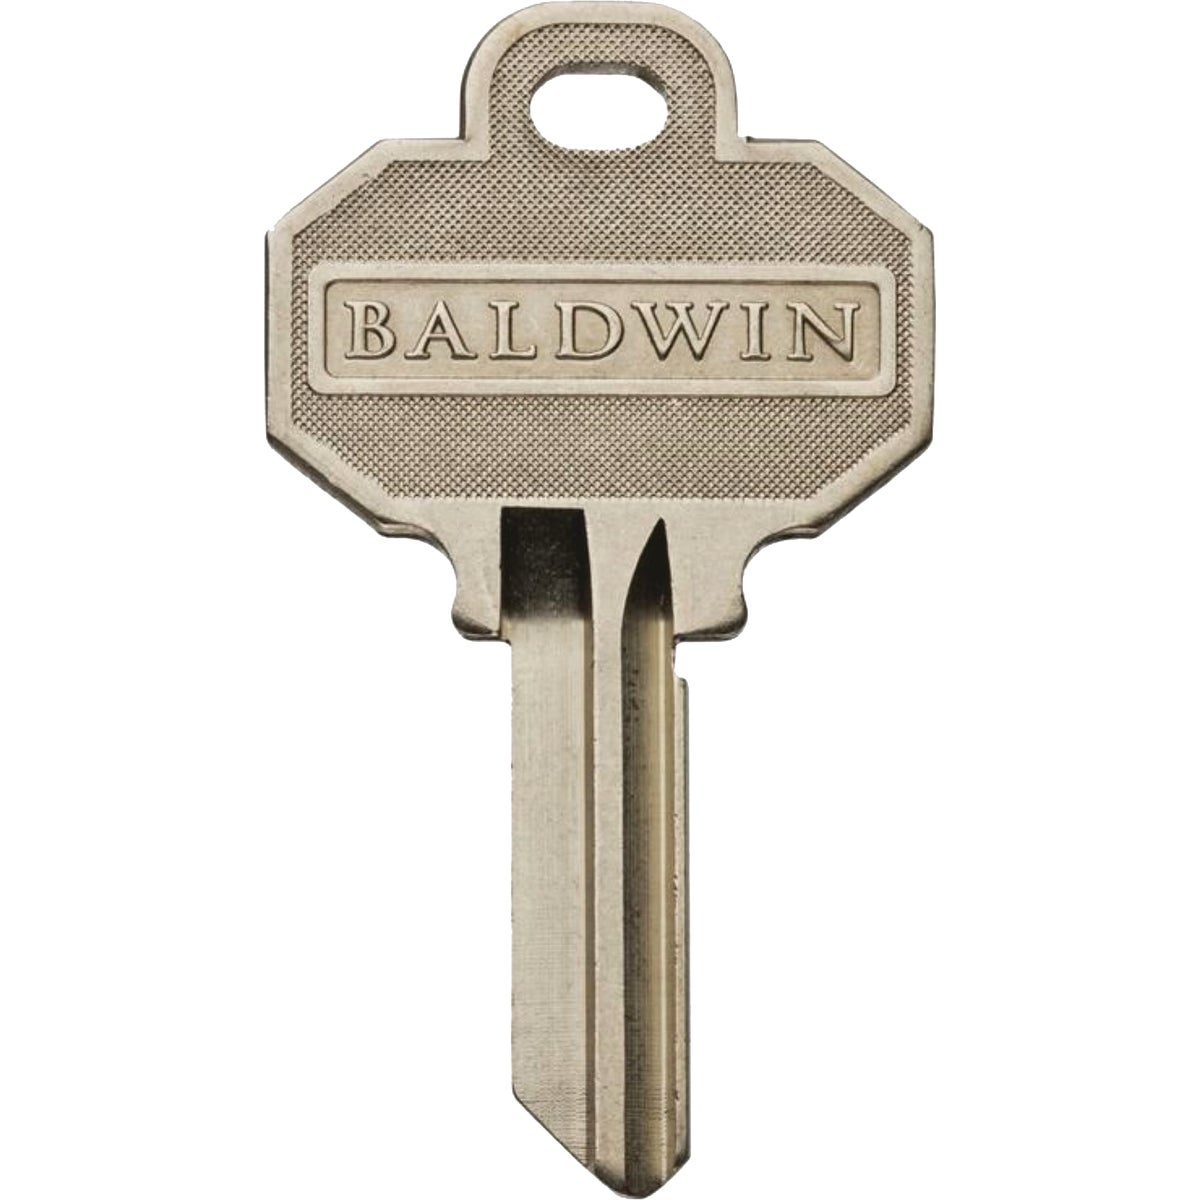 BALDWIN C HOUSE KEY - 83628-001 by Kwikset